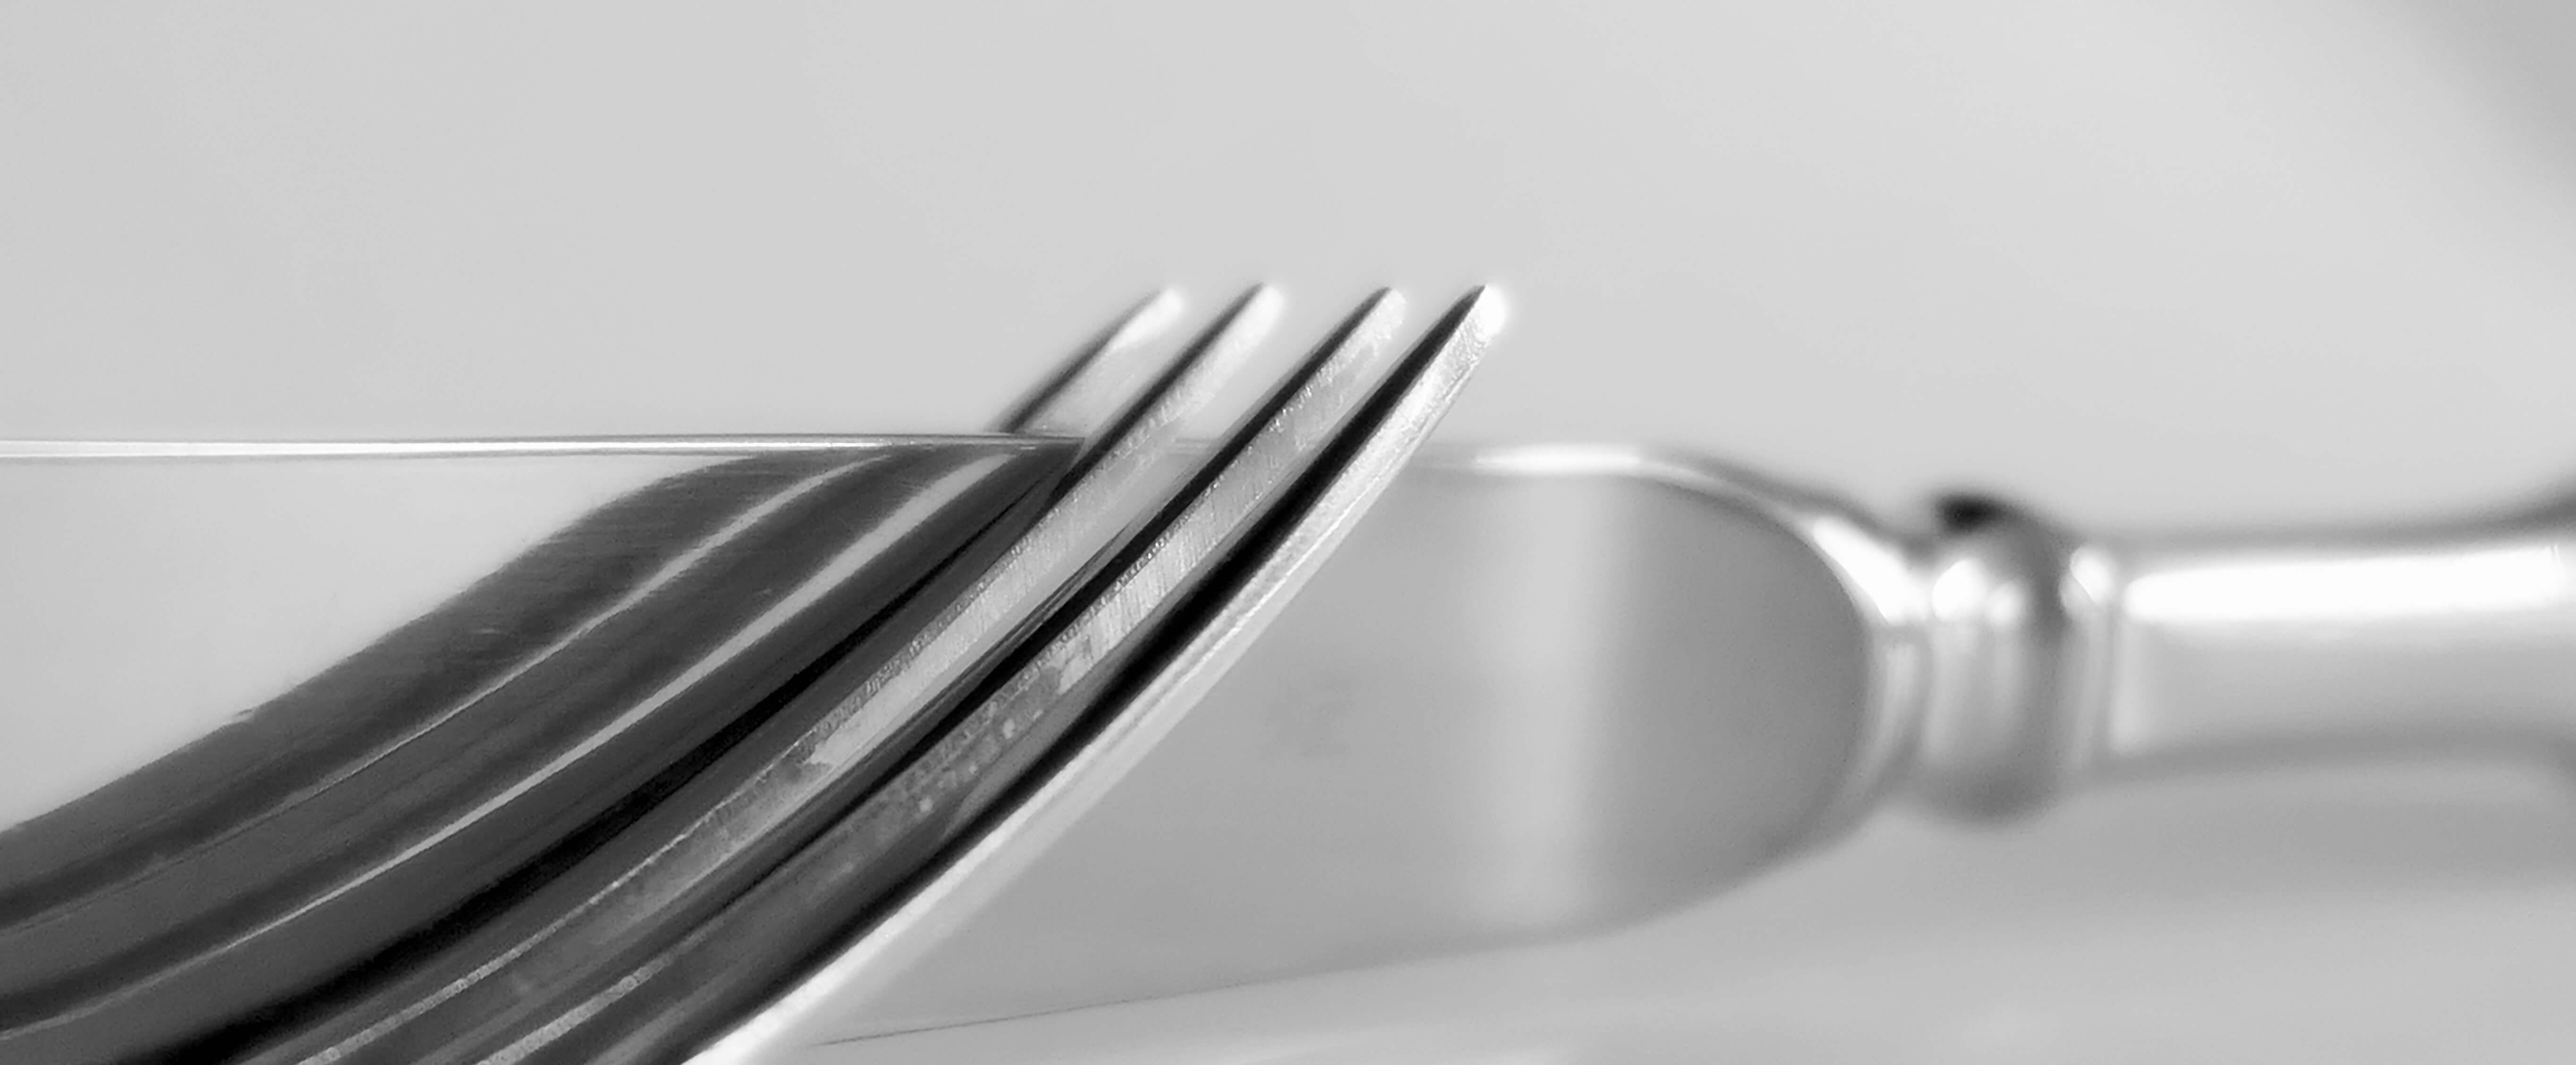 The Cutlery Care Guide From Bidfood